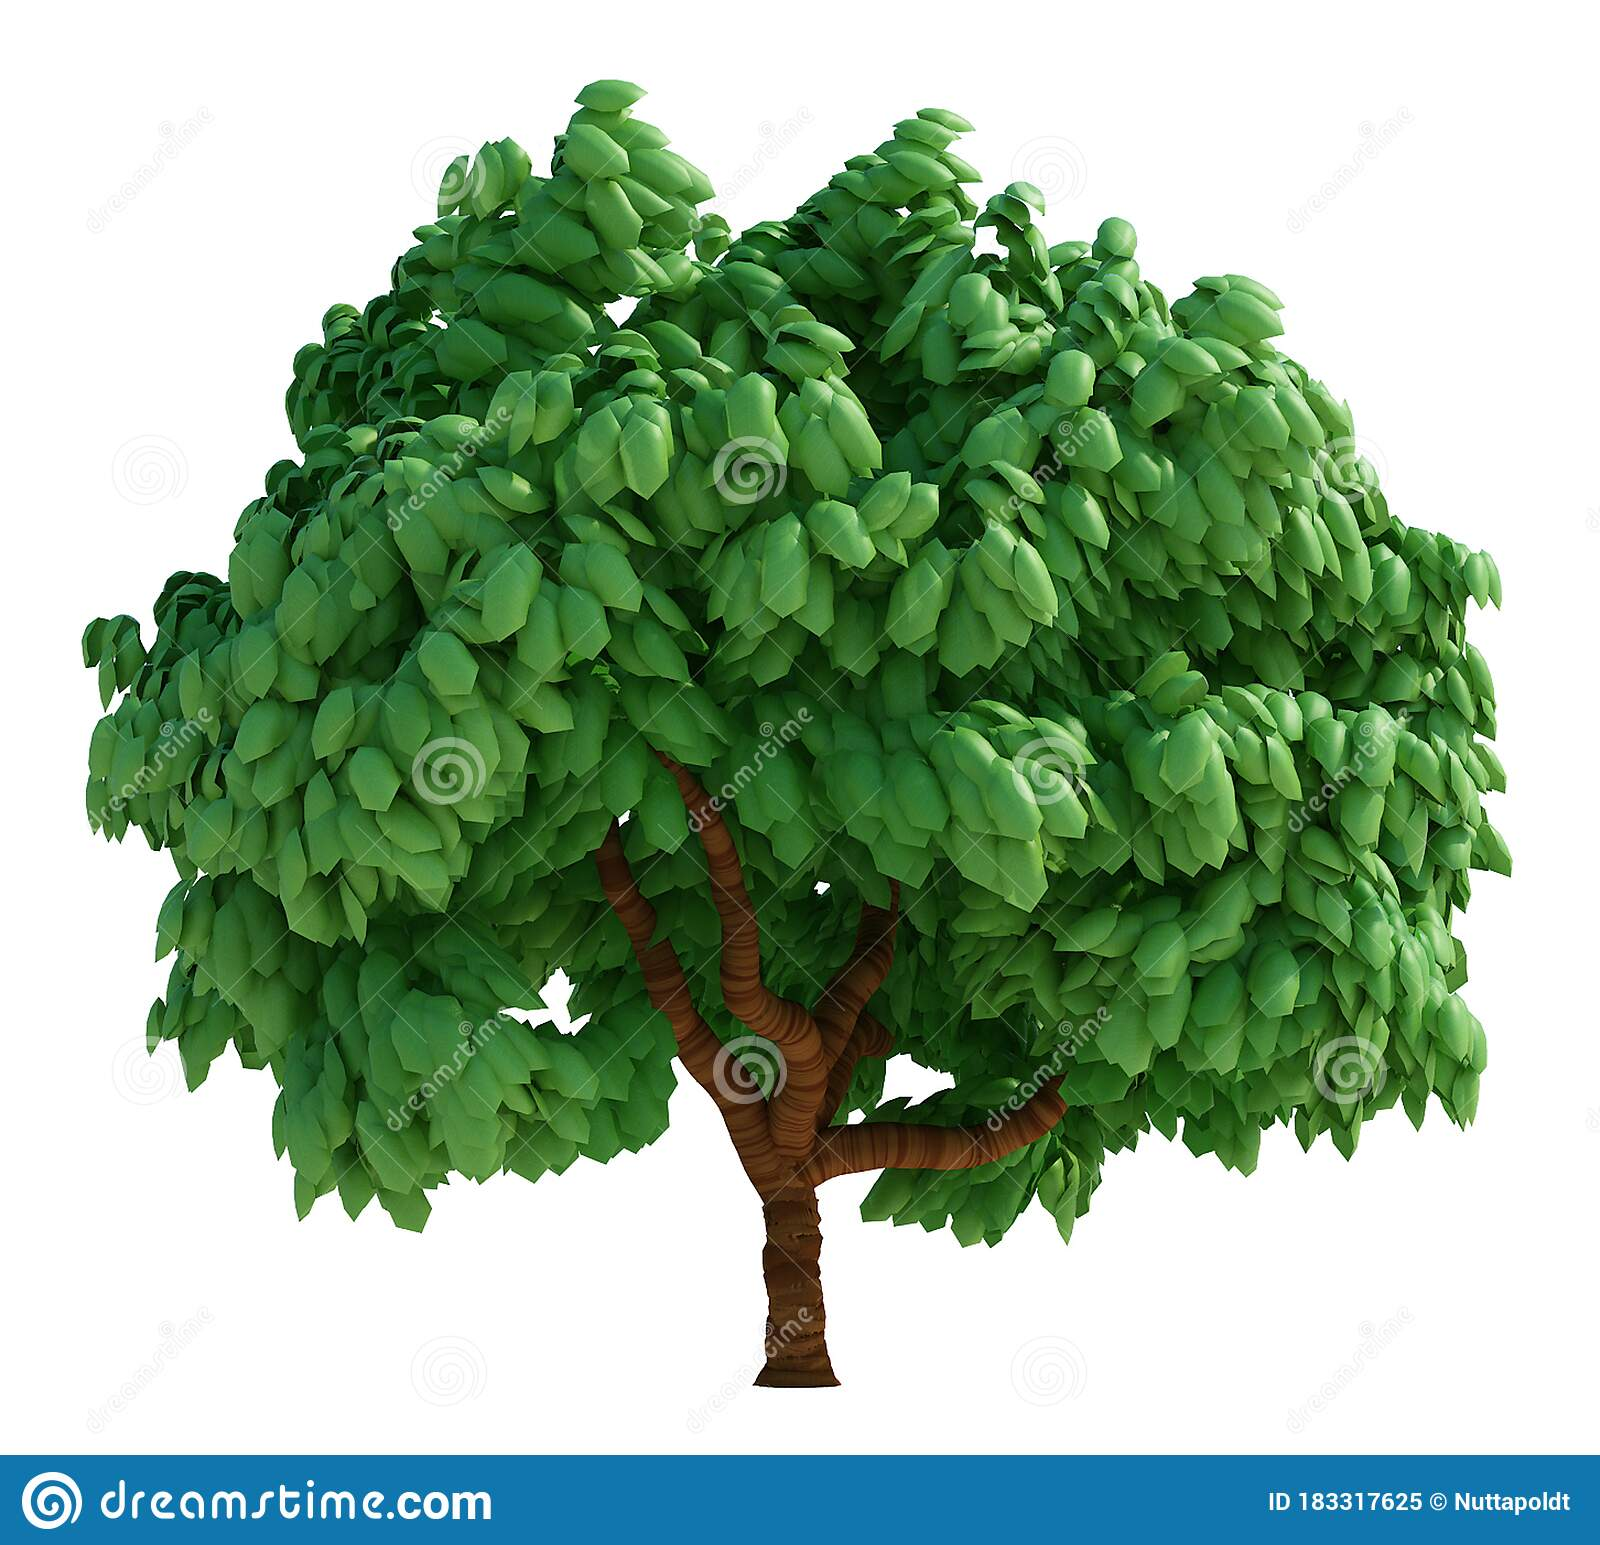 3d Render Cartoon Tree Isolated On White Stock Illustration Illustration Of Plant Forest 183317625 Some stylized tree models for fun based on concepts by scott gwynn. 3d render cartoon tree isolated on white stock illustration illustration of plant forest 183317625